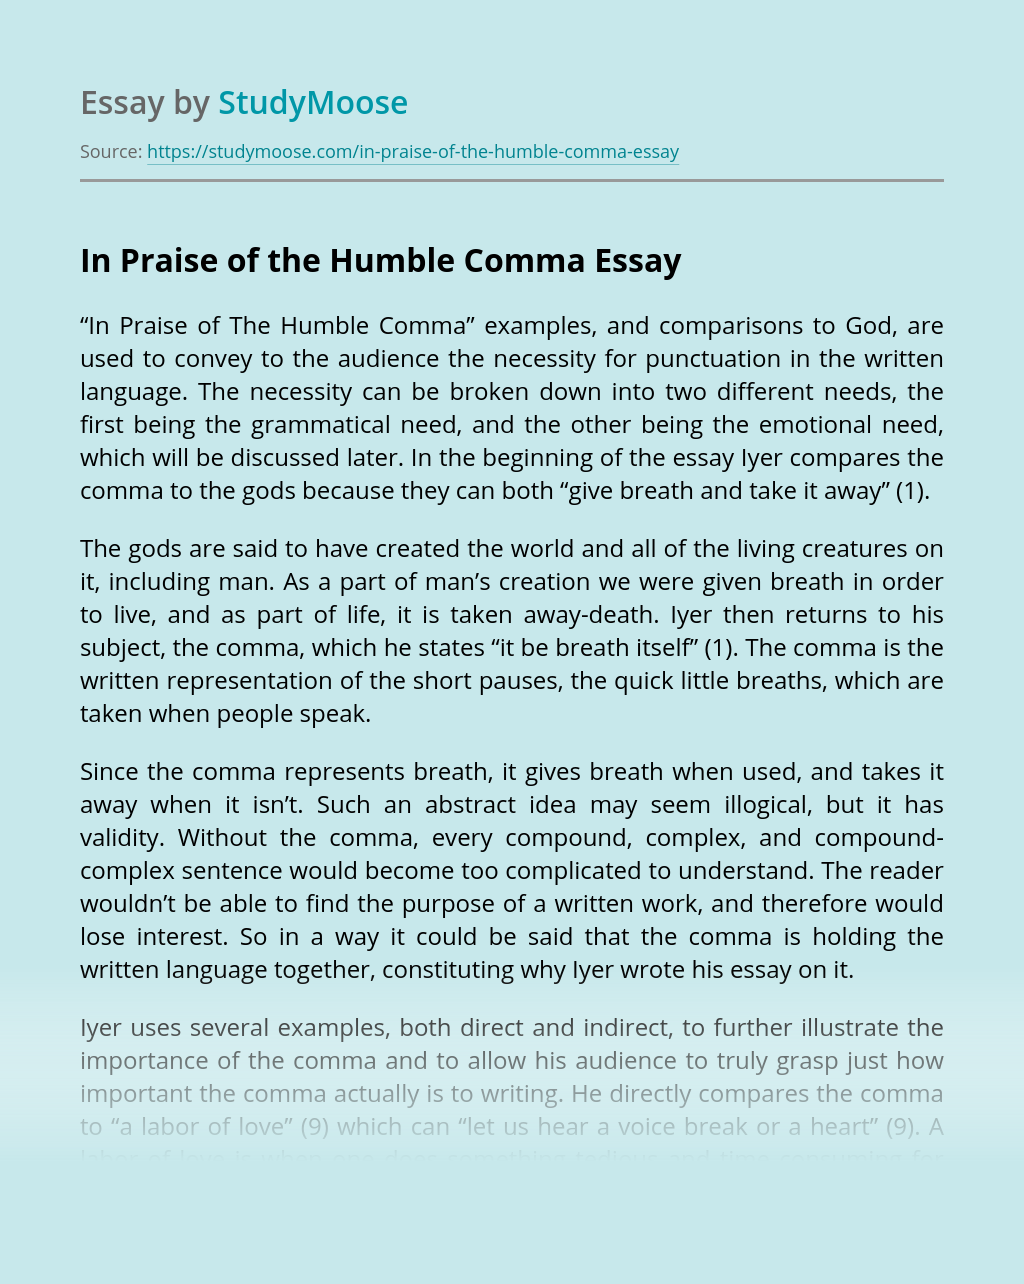 In Praise of the Humble Comma